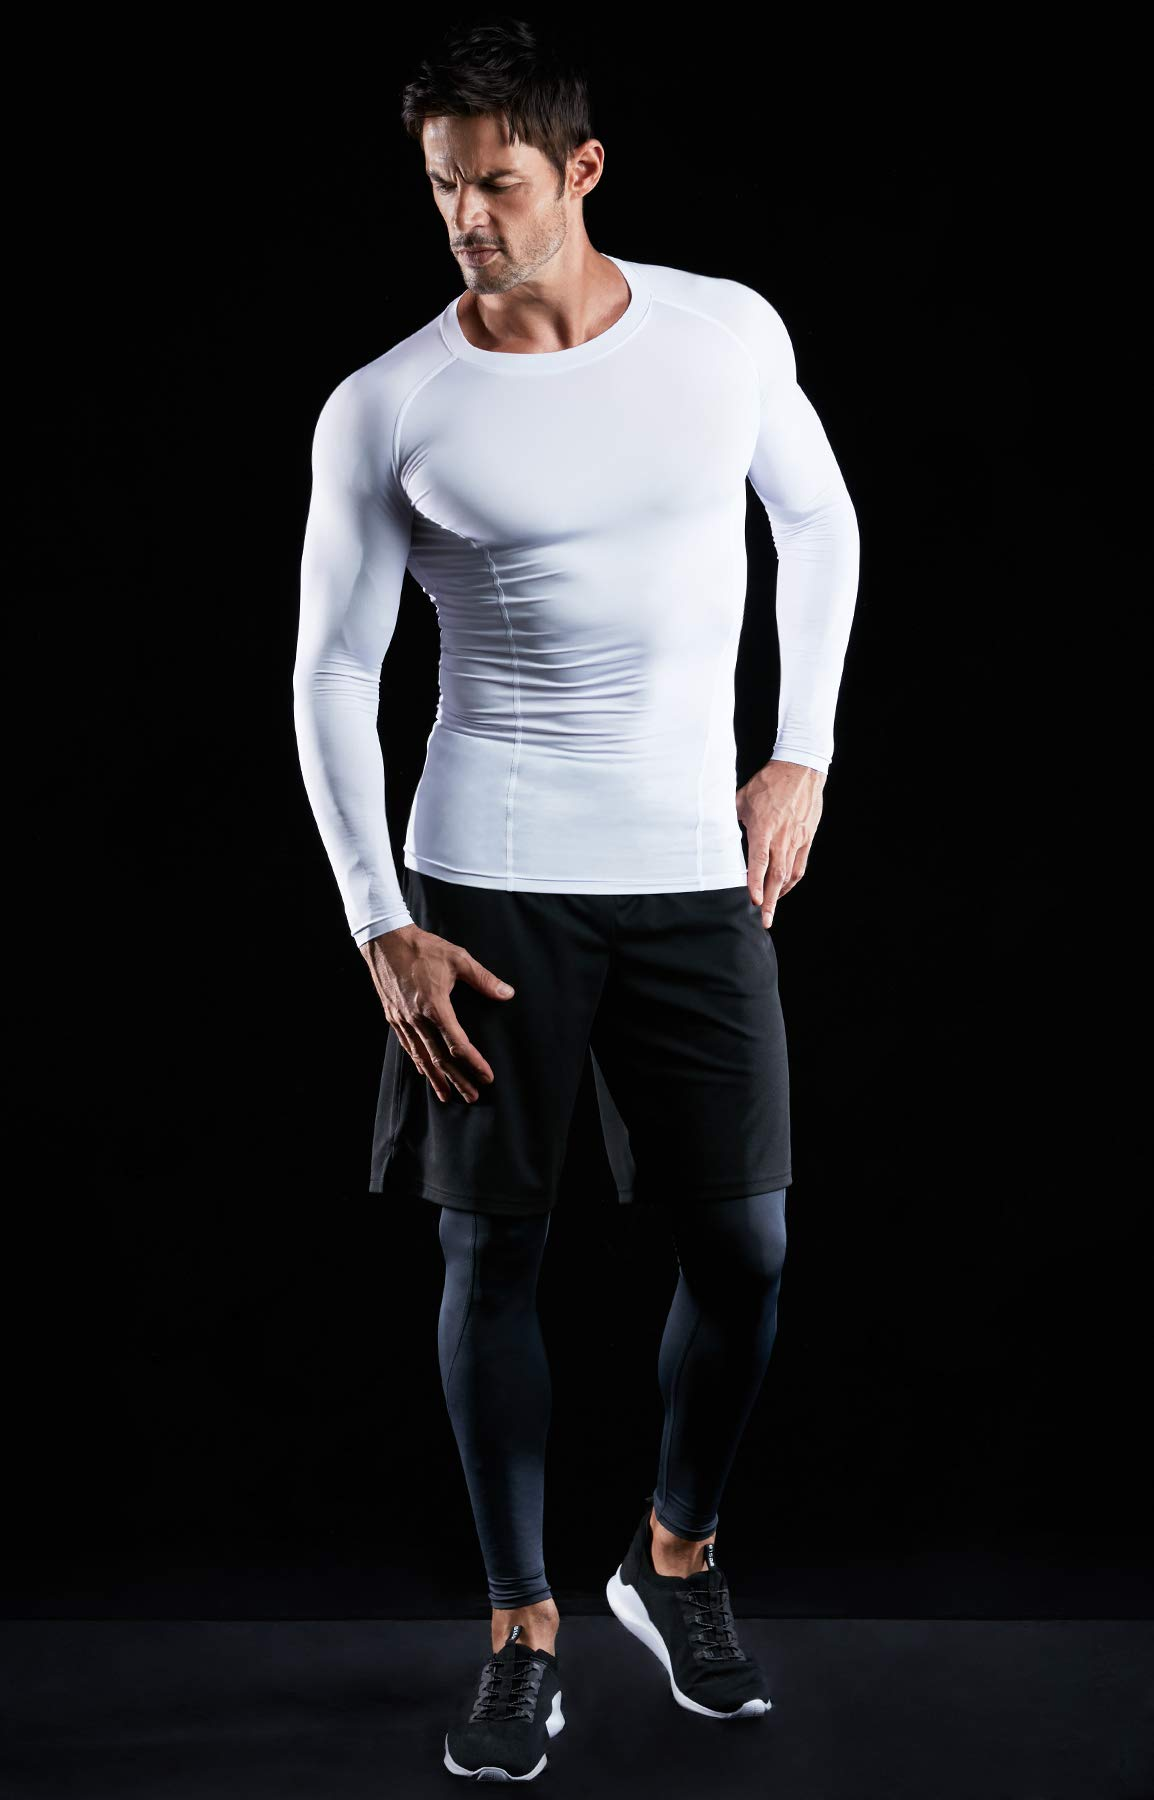 ATHLIO AO-BLS01-KCW_Large Men's (Pack of 3) Cool Dry Compression Long Sleeve Baselayer Athletic Sports T-Shirts Tops BLS01 by ATHLIO (Image #8)